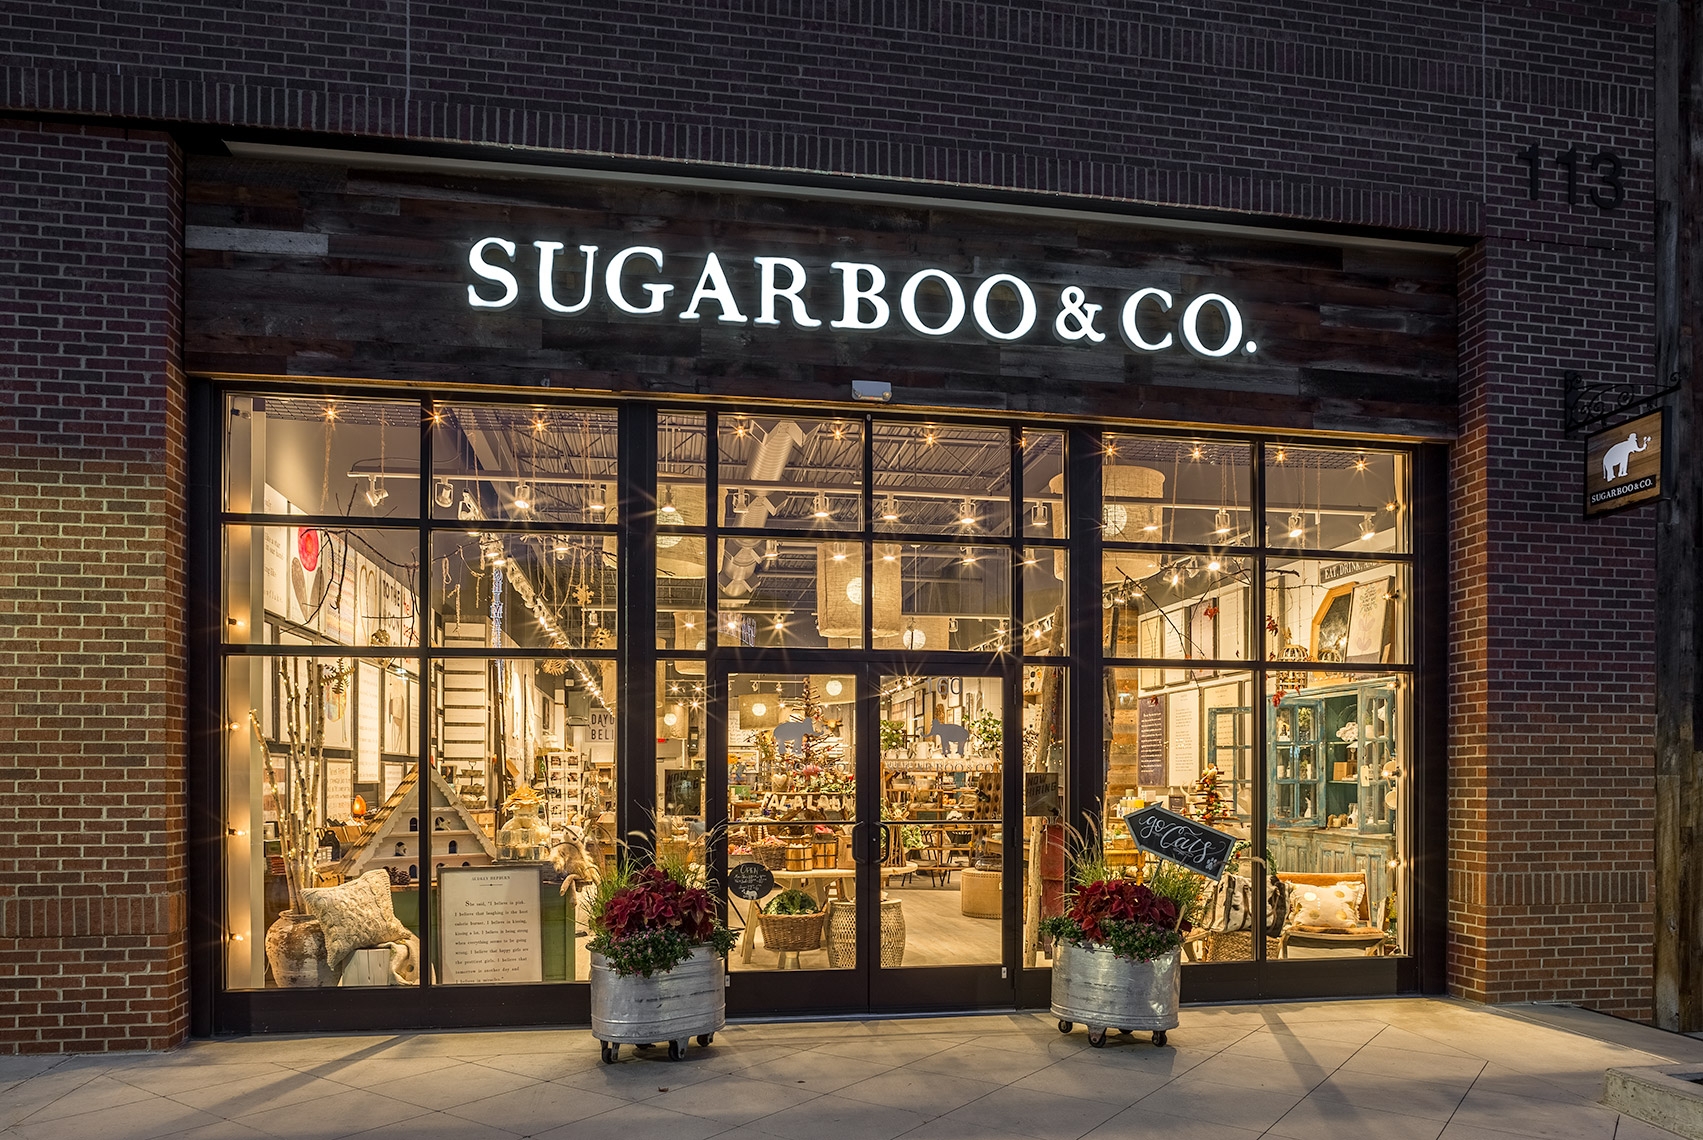 sugarboo & co signage at night